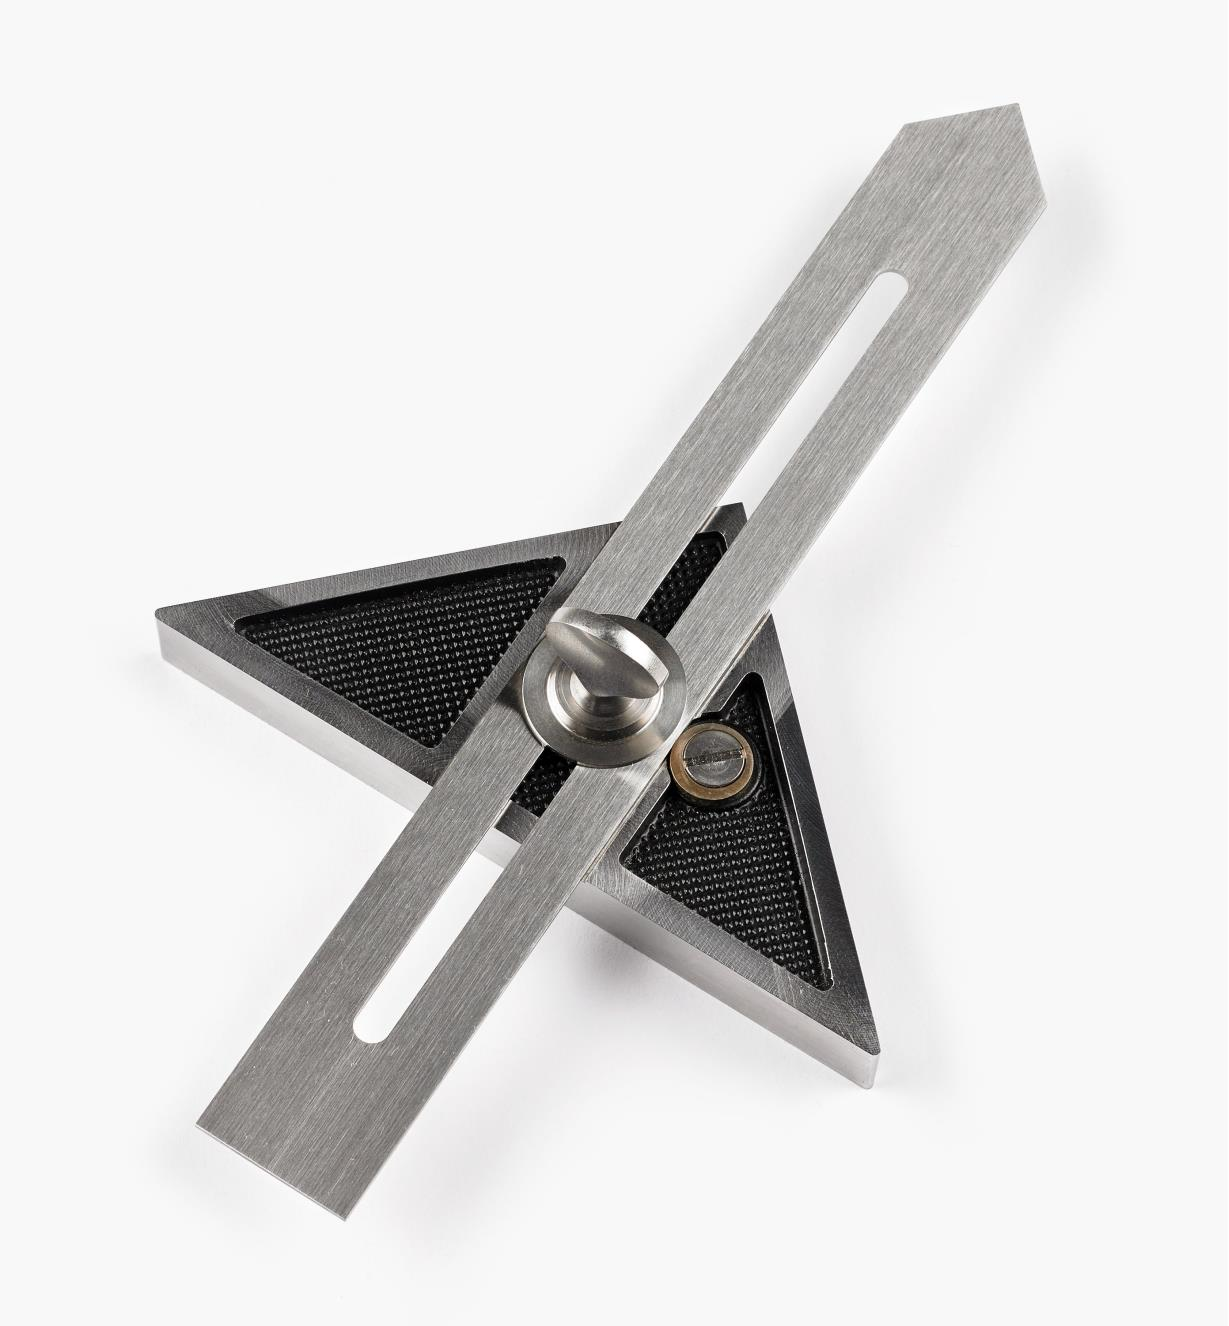 15N0901 - Lee Valley Replica Bevel Square